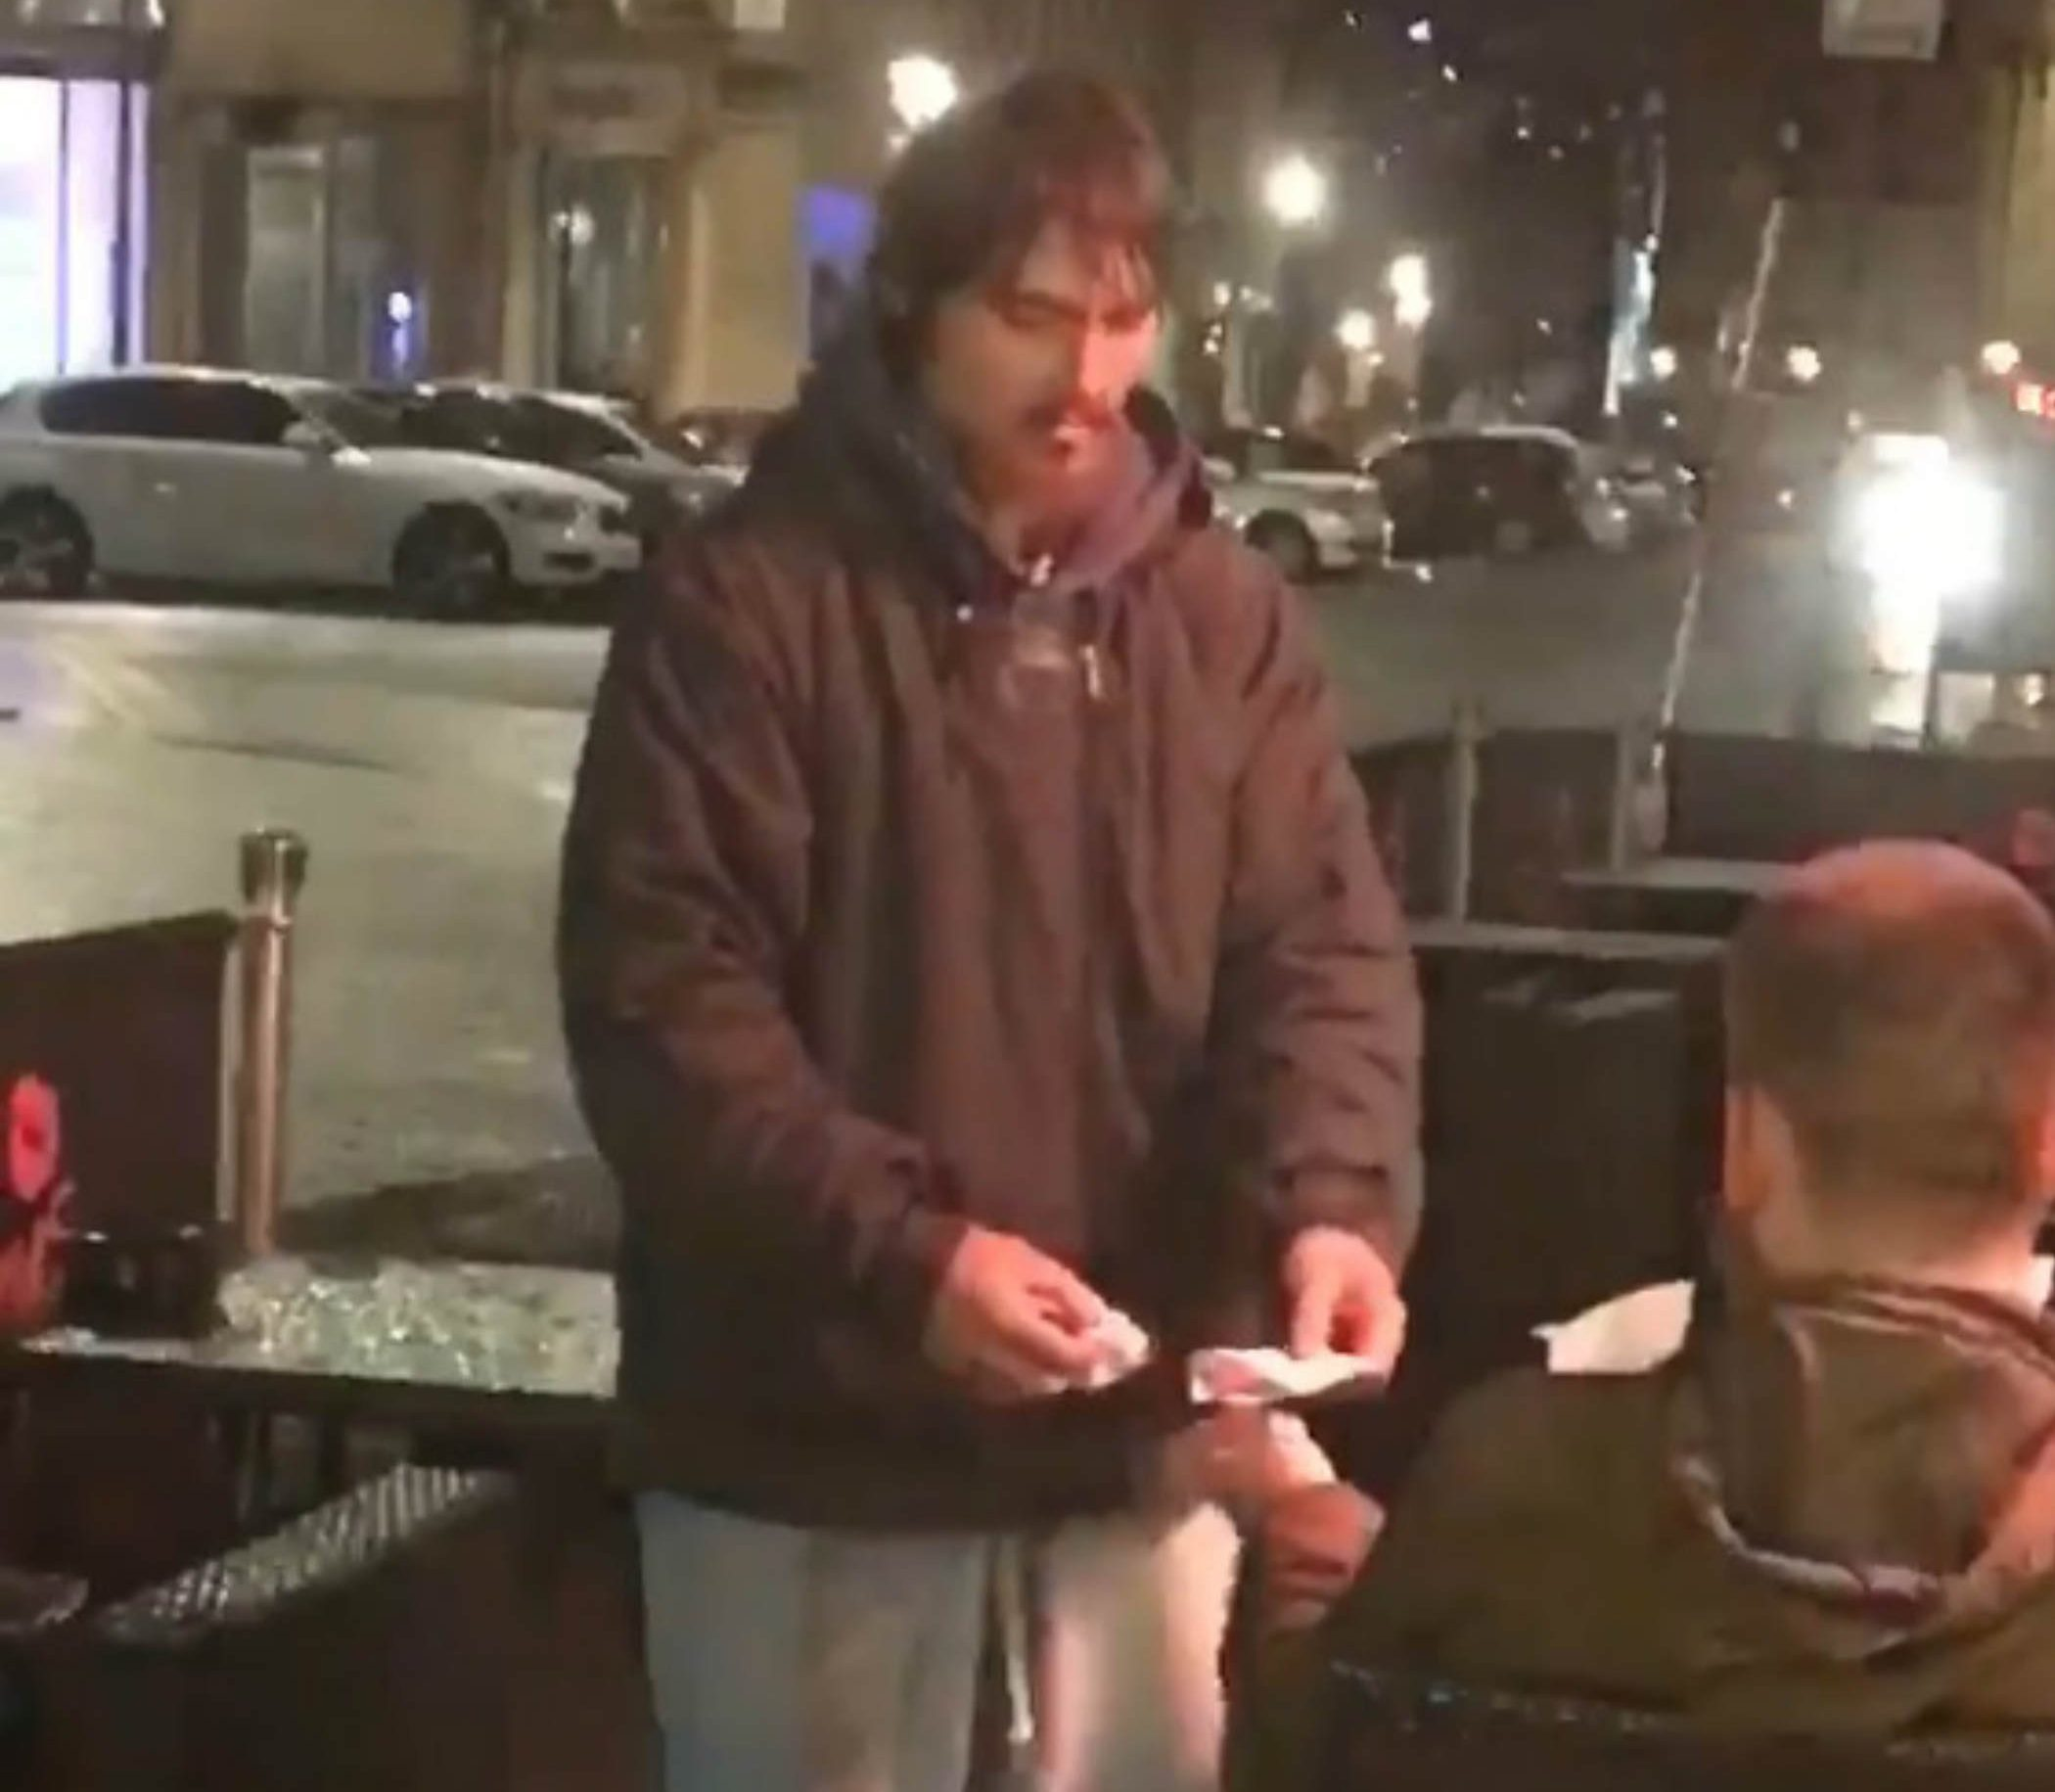 """HEART-WARMING video shows a samaritan giving a """"homeless man"""" his bank card, to withdraw money out for himself. The man, with a beard and jacket, can be seen returning to a helpful punter with his receipt and ?20 after being given the card along with its PIN number. He then shakes the hand of the man, who is sat outside at Harry?s Bar and Restaurant, on Grey Street, Newcastle-upon-Tyne. The clip was taken by Jack Fada, from Newcastle-upon-Tyne, as he took a break"""